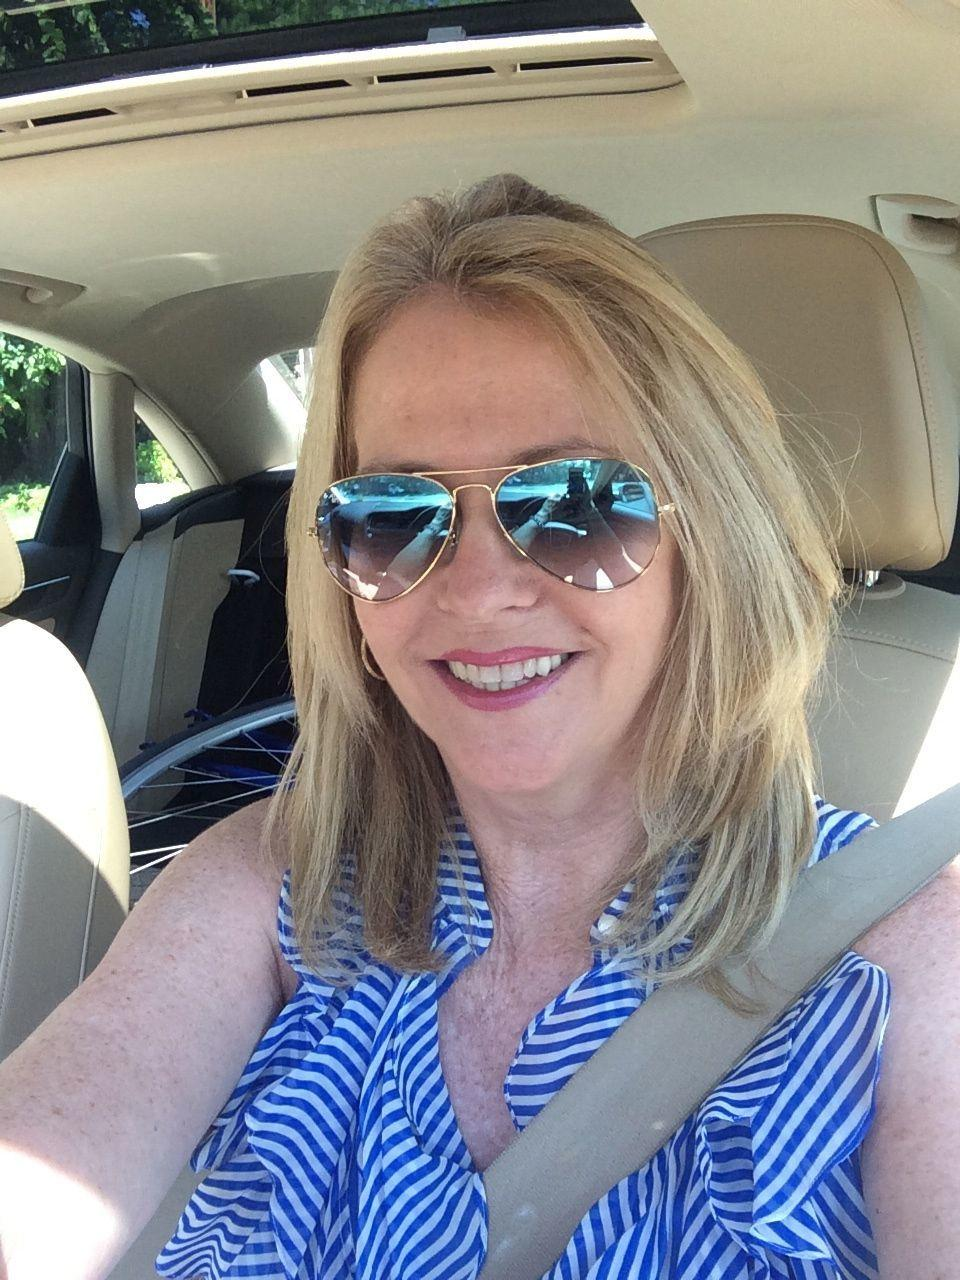 smithtown single women Smithtown singles over 50 interested in dating and making new friends use zoosk single men in smithtown single women in smithtown singles over 50 in smithtown.